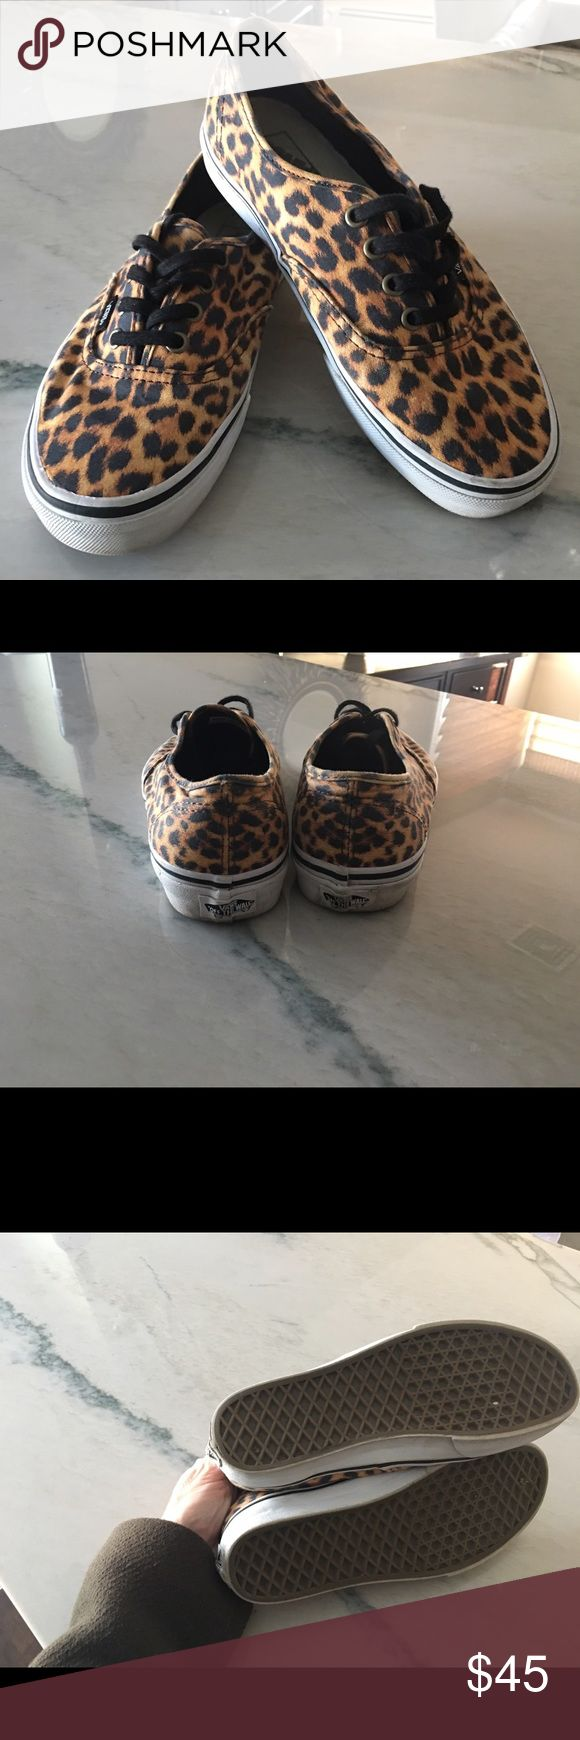 Ladies VANS animal print sneakers Ladies VANS animal print canvas sneakers in ladies size 7.5 men's size 6. In great shape no stains, rips or odors. Comes from a pet free and smoke free home. Feel free to message me any questions.. Vans Shoes Sneakers